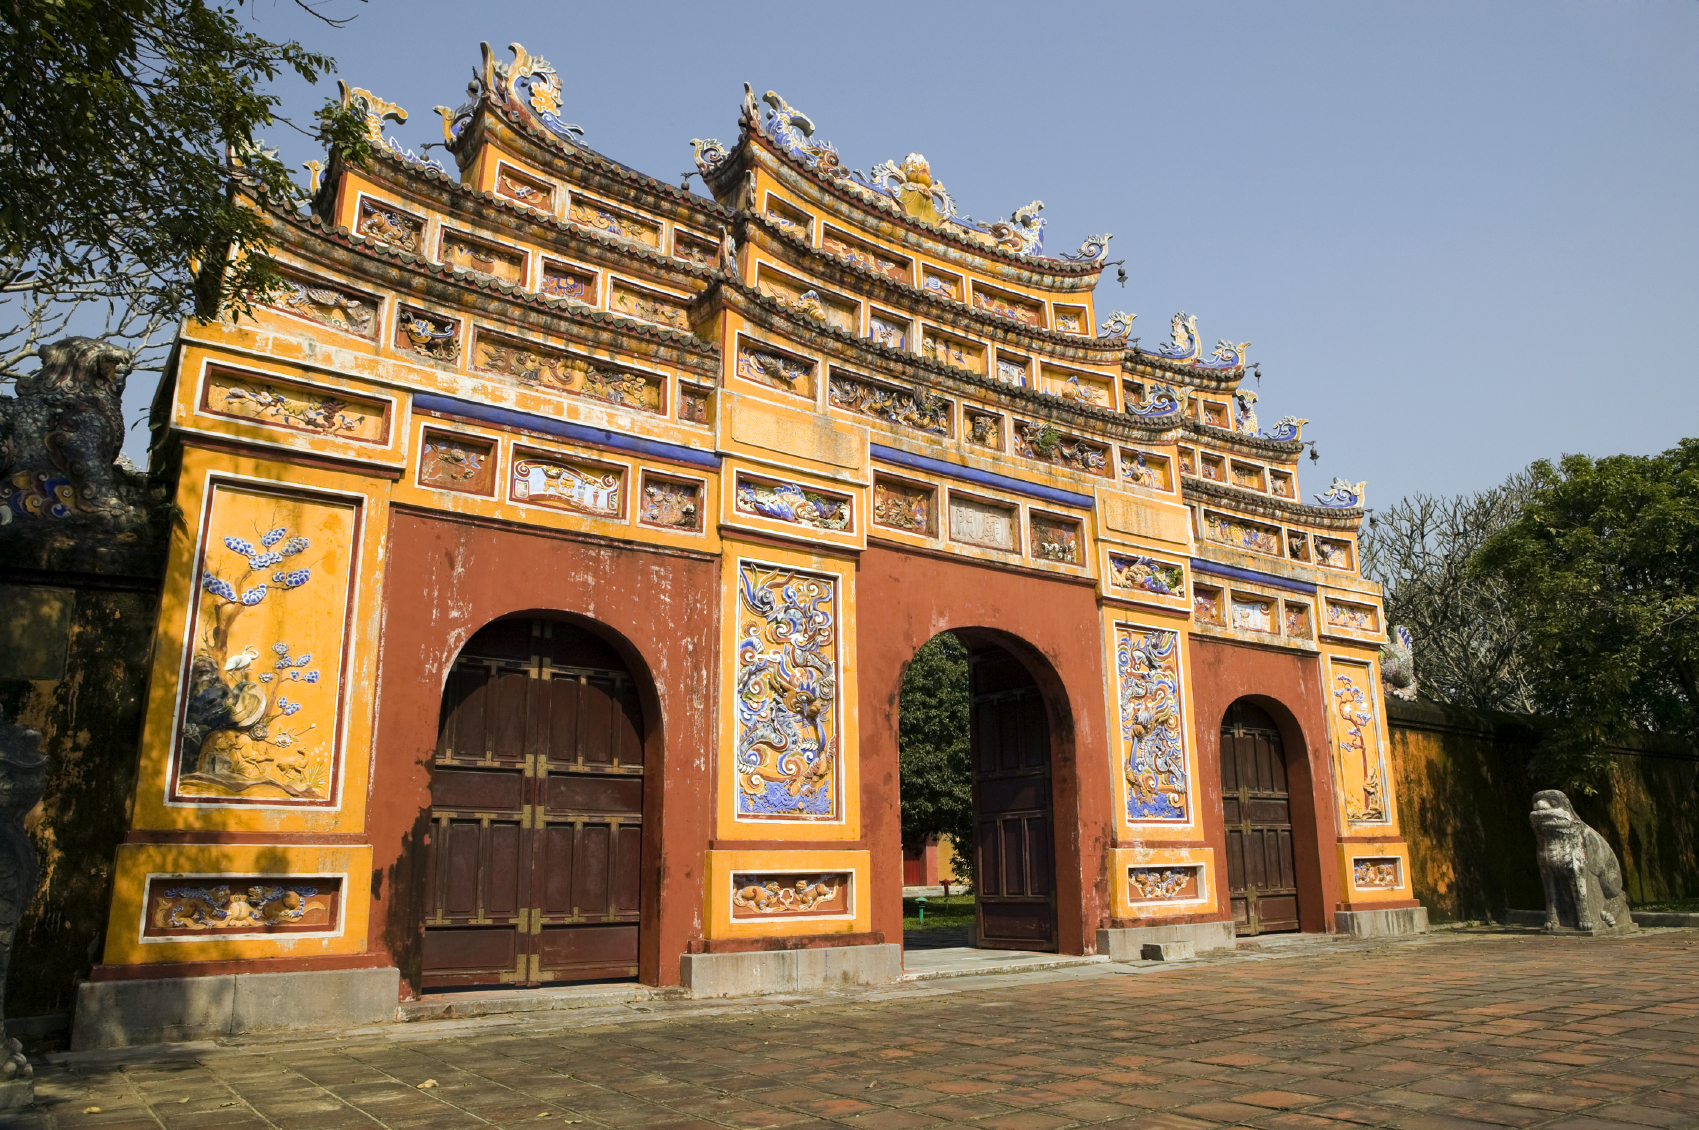 Vietnam - Hue - Gateway to the Imperial Citadel